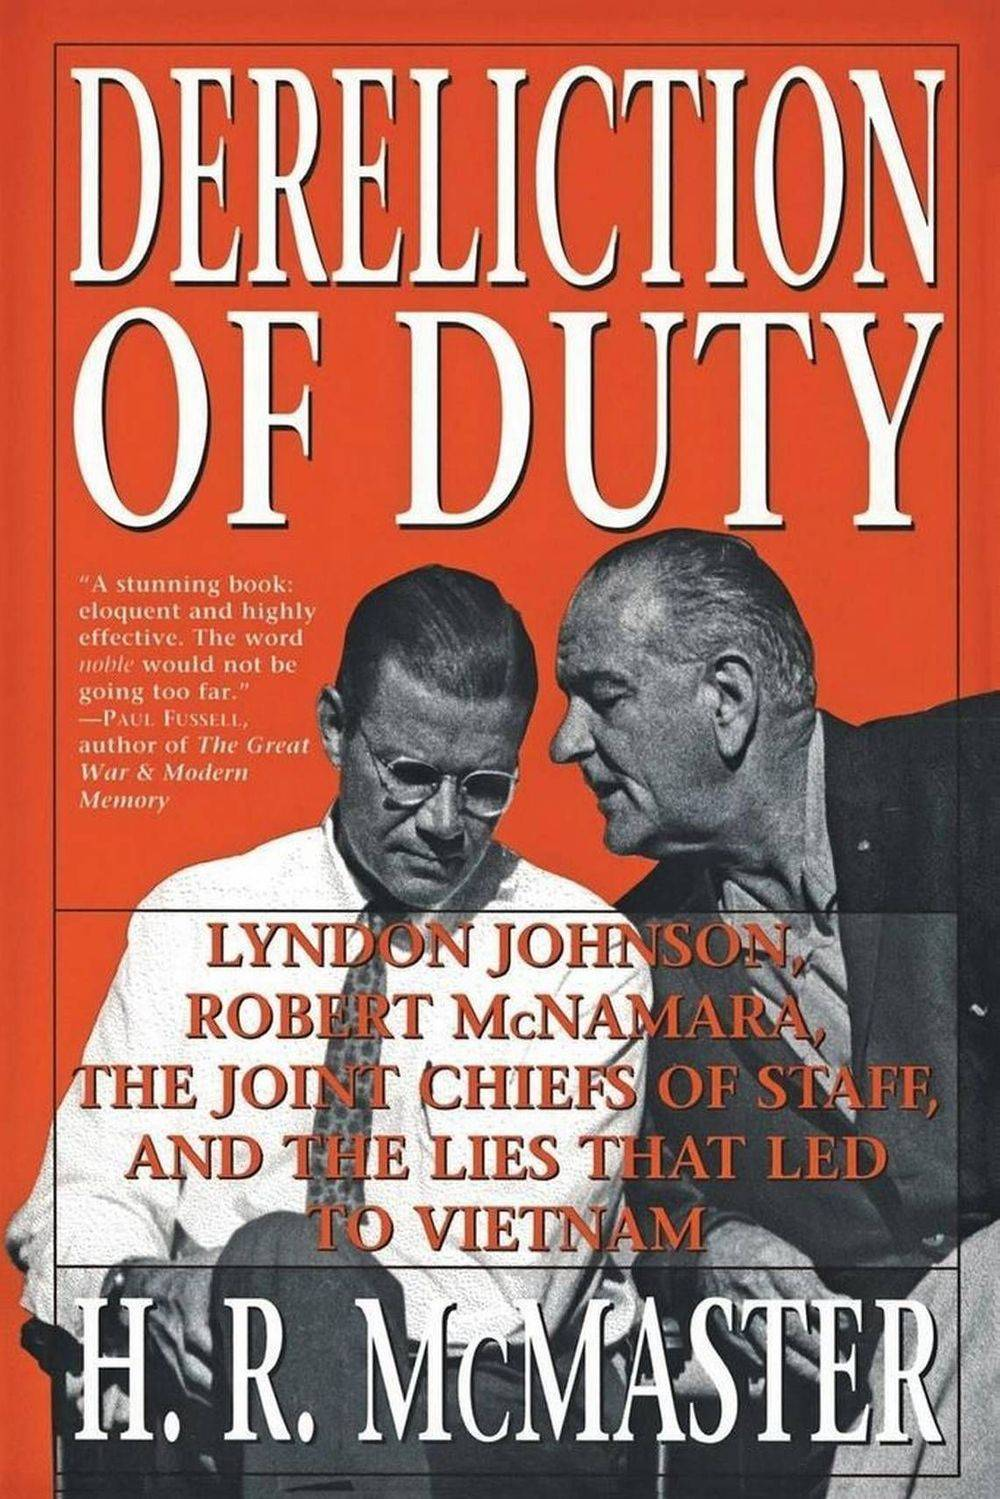 Book review, war is my business, wimb, Dereliction of Duty review